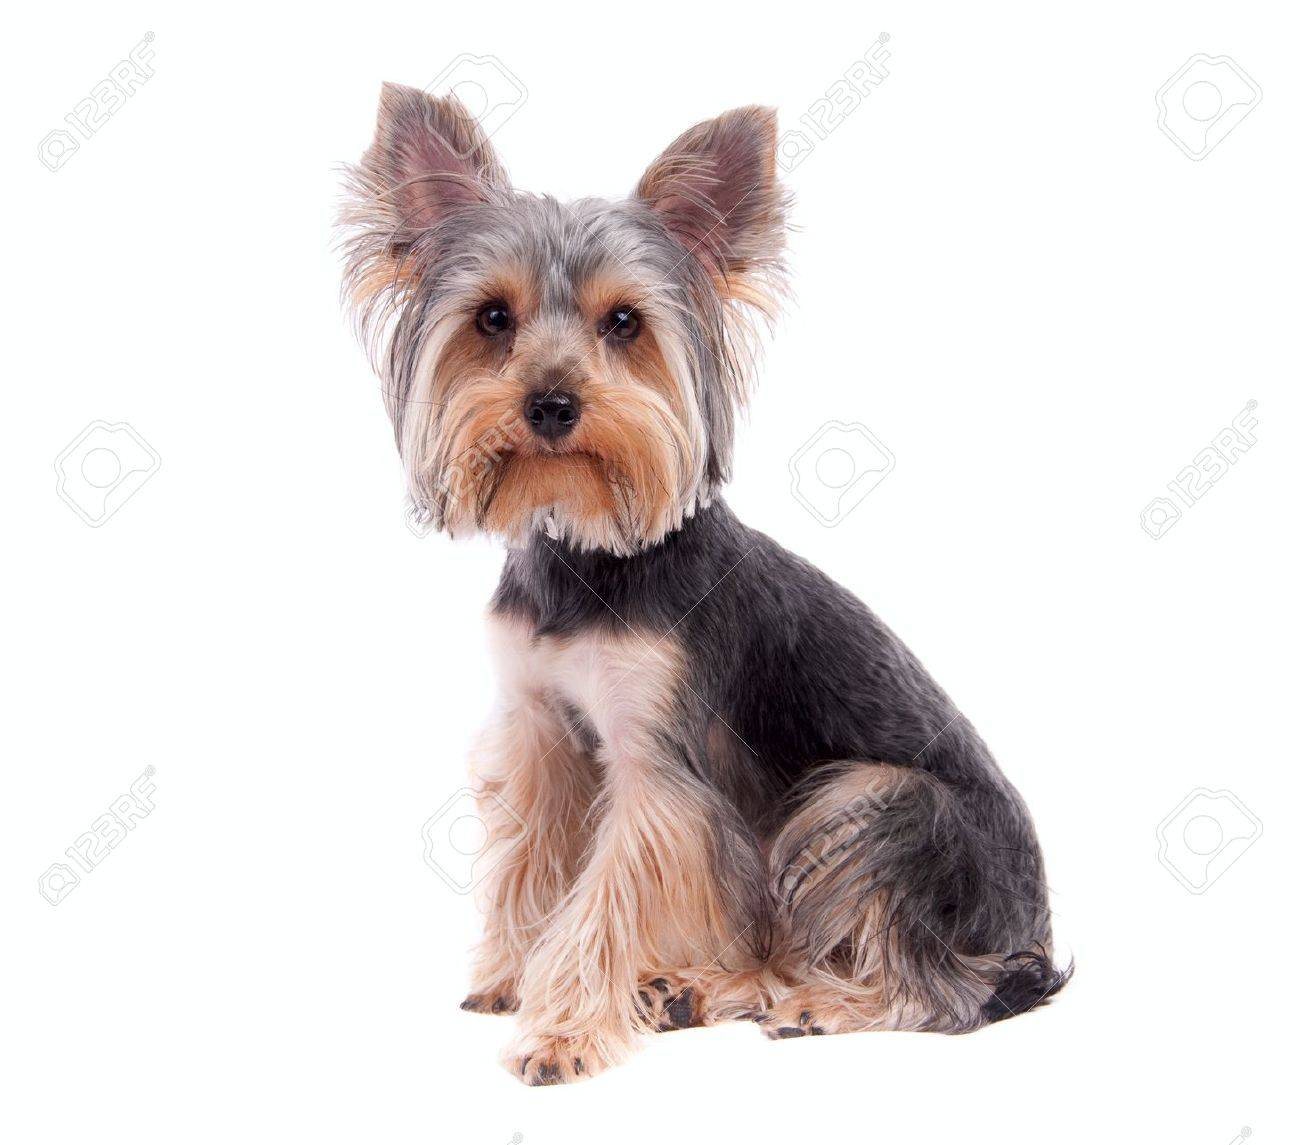 Small puppy yorkshire a terrier curious Stock Photo - 8891904